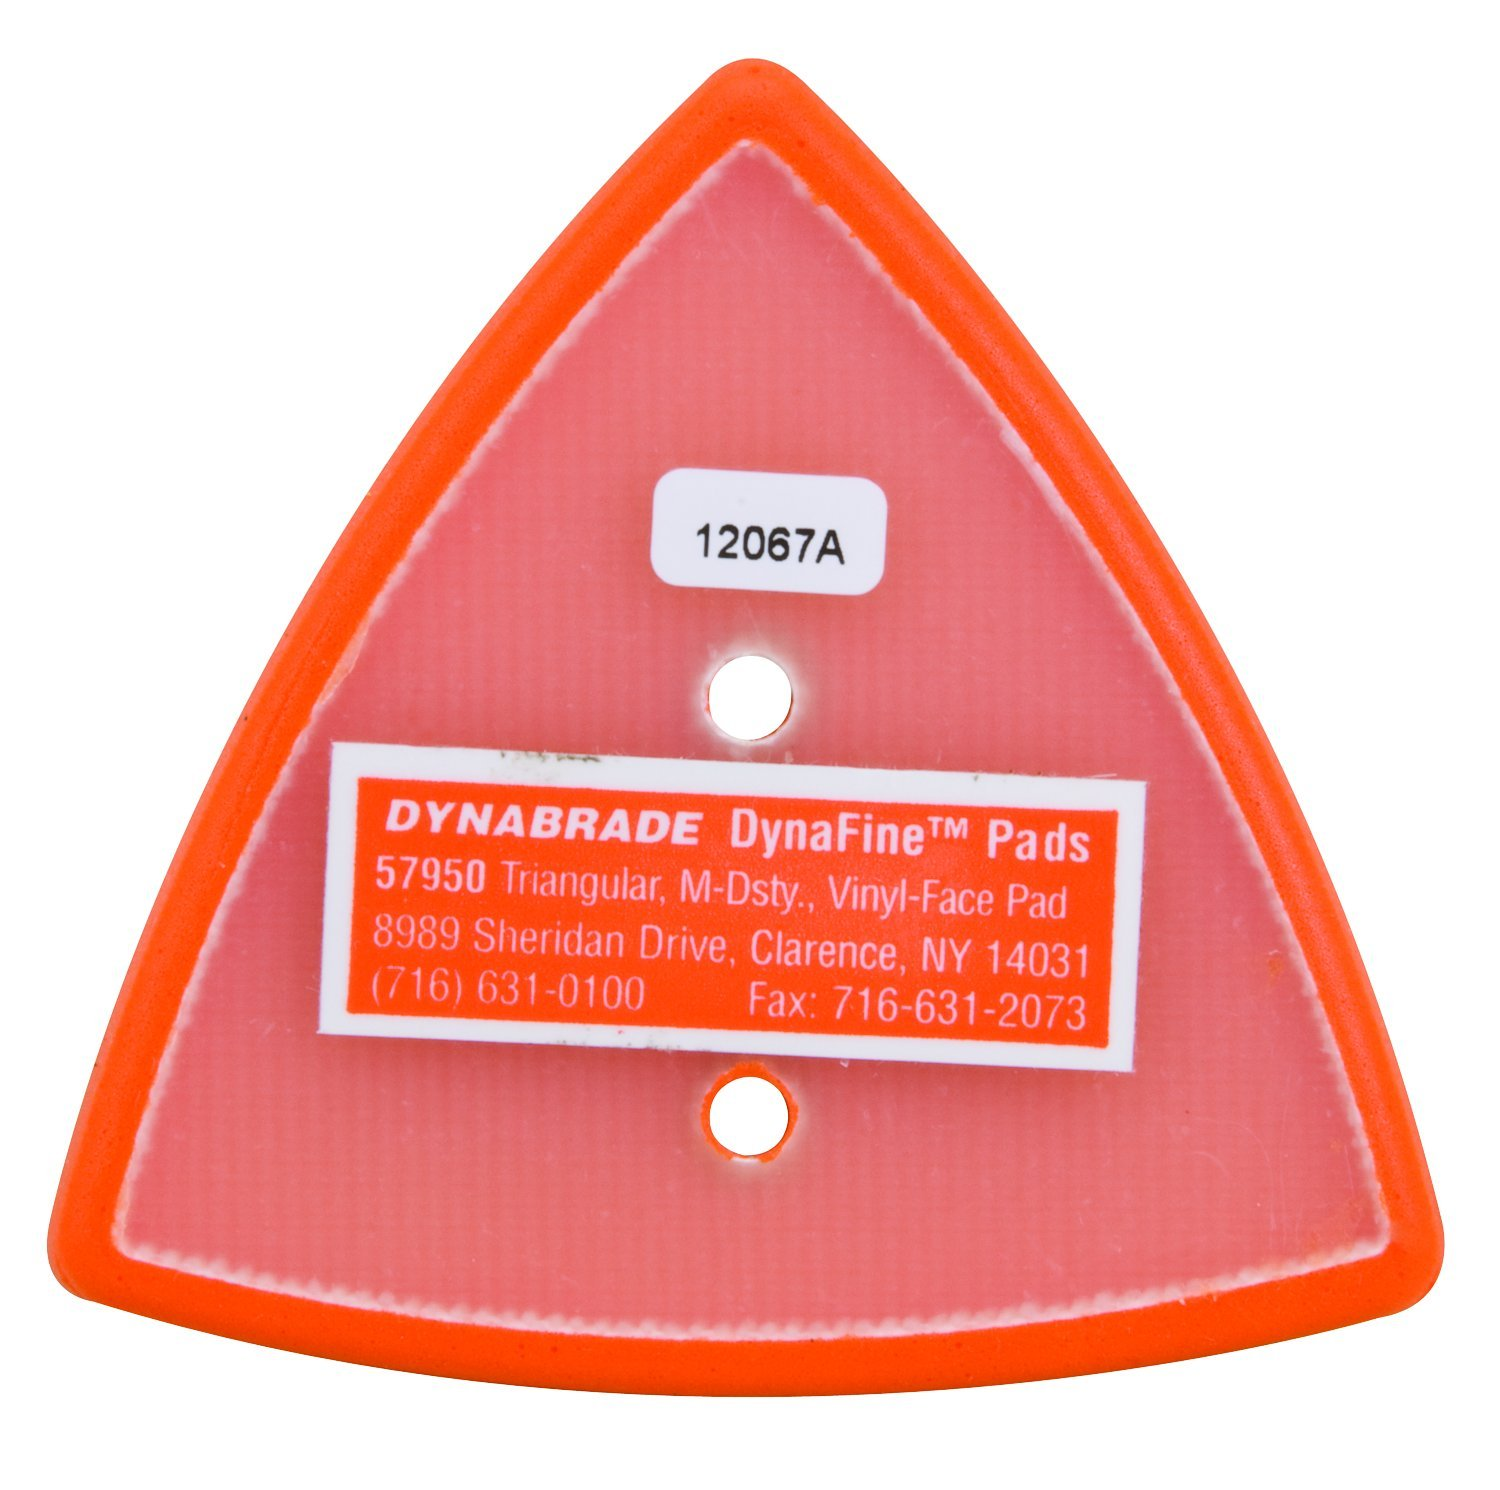 Dynabrade 57950 Non-Vacuum Dynafine Triangular Disc Pad 2-7//8-Inch by 3-1//8-Inch Inc.